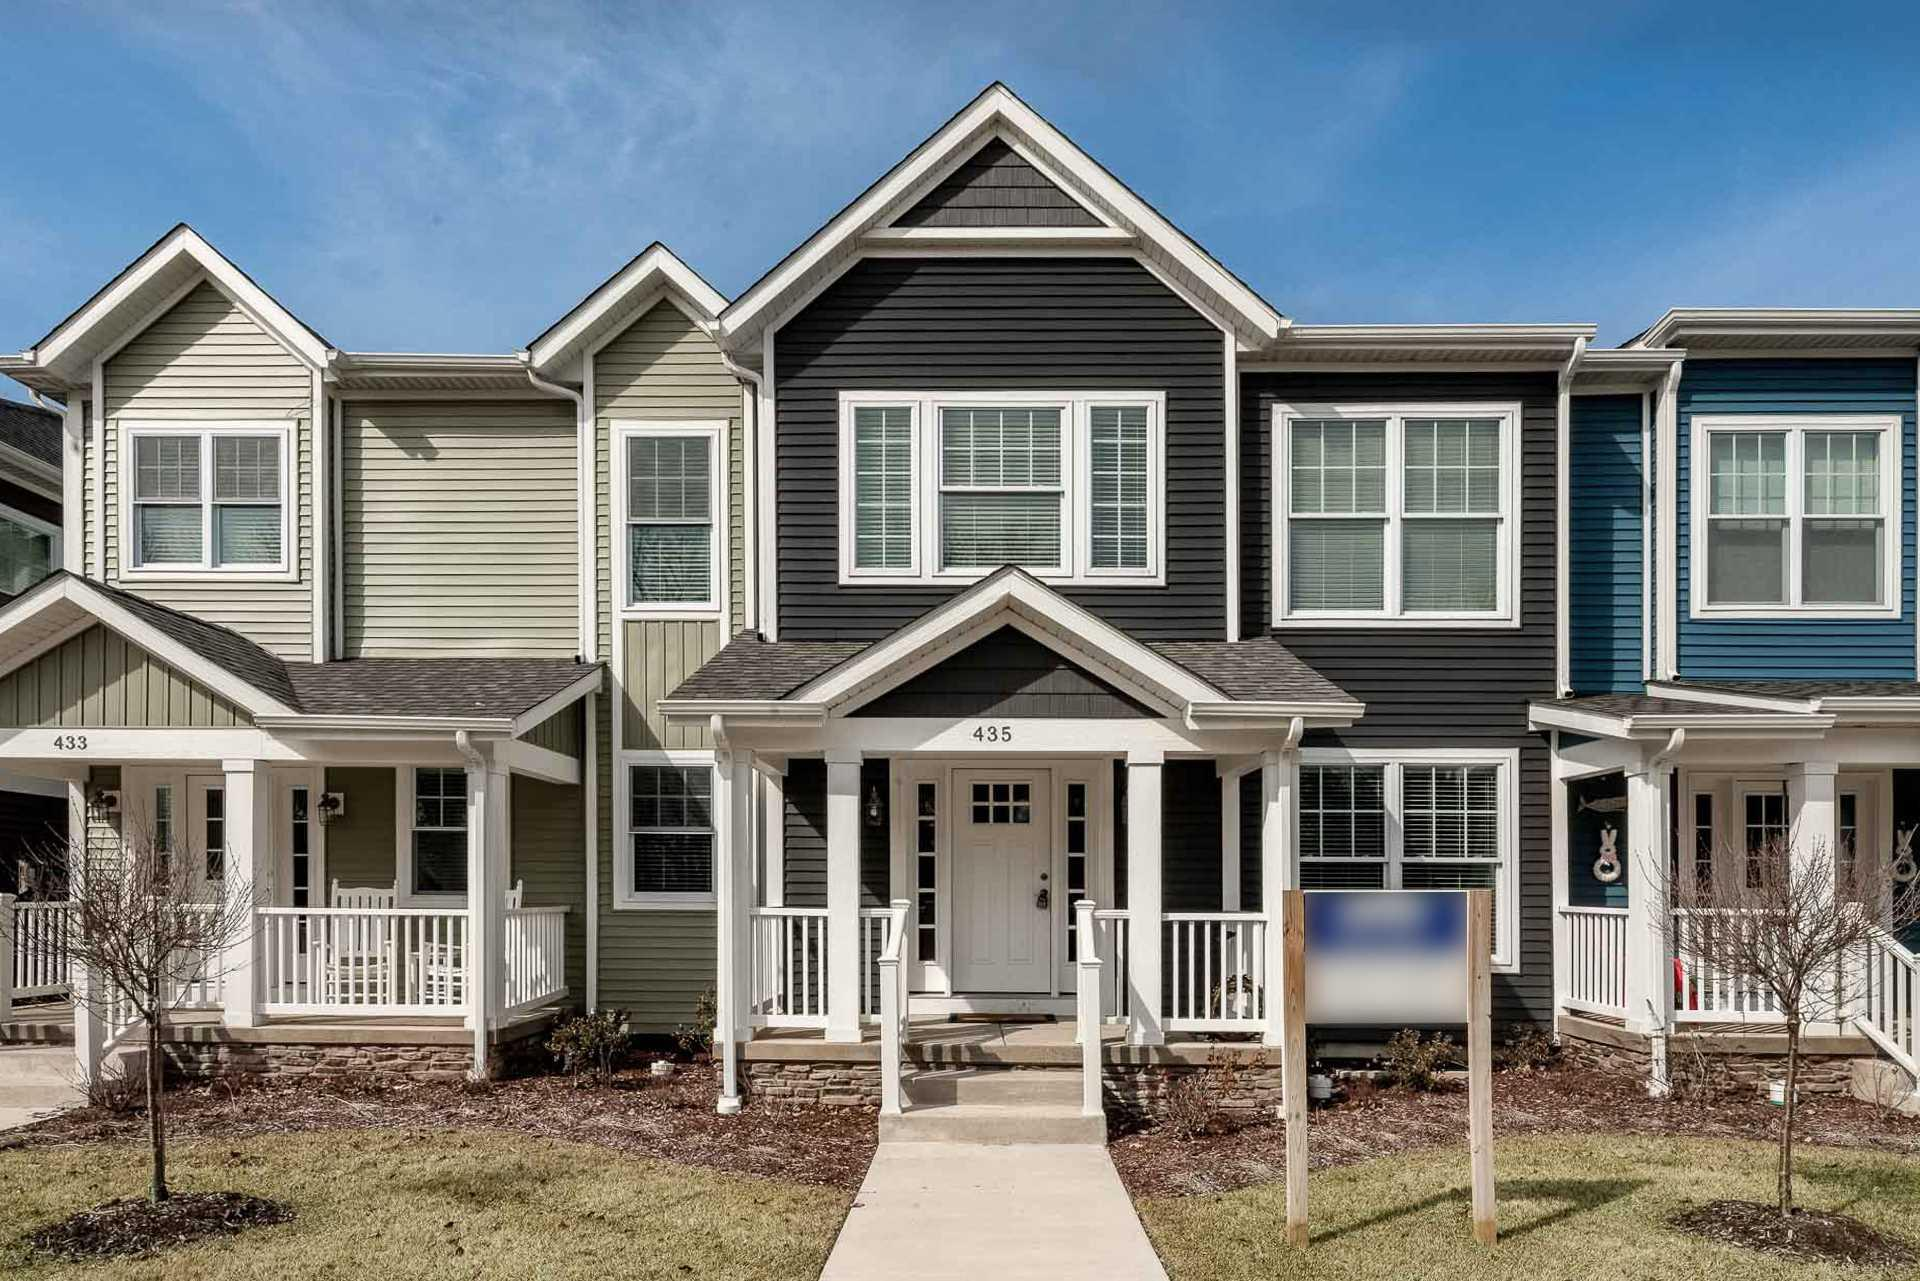 435 E Corby South Bend, IN 46617